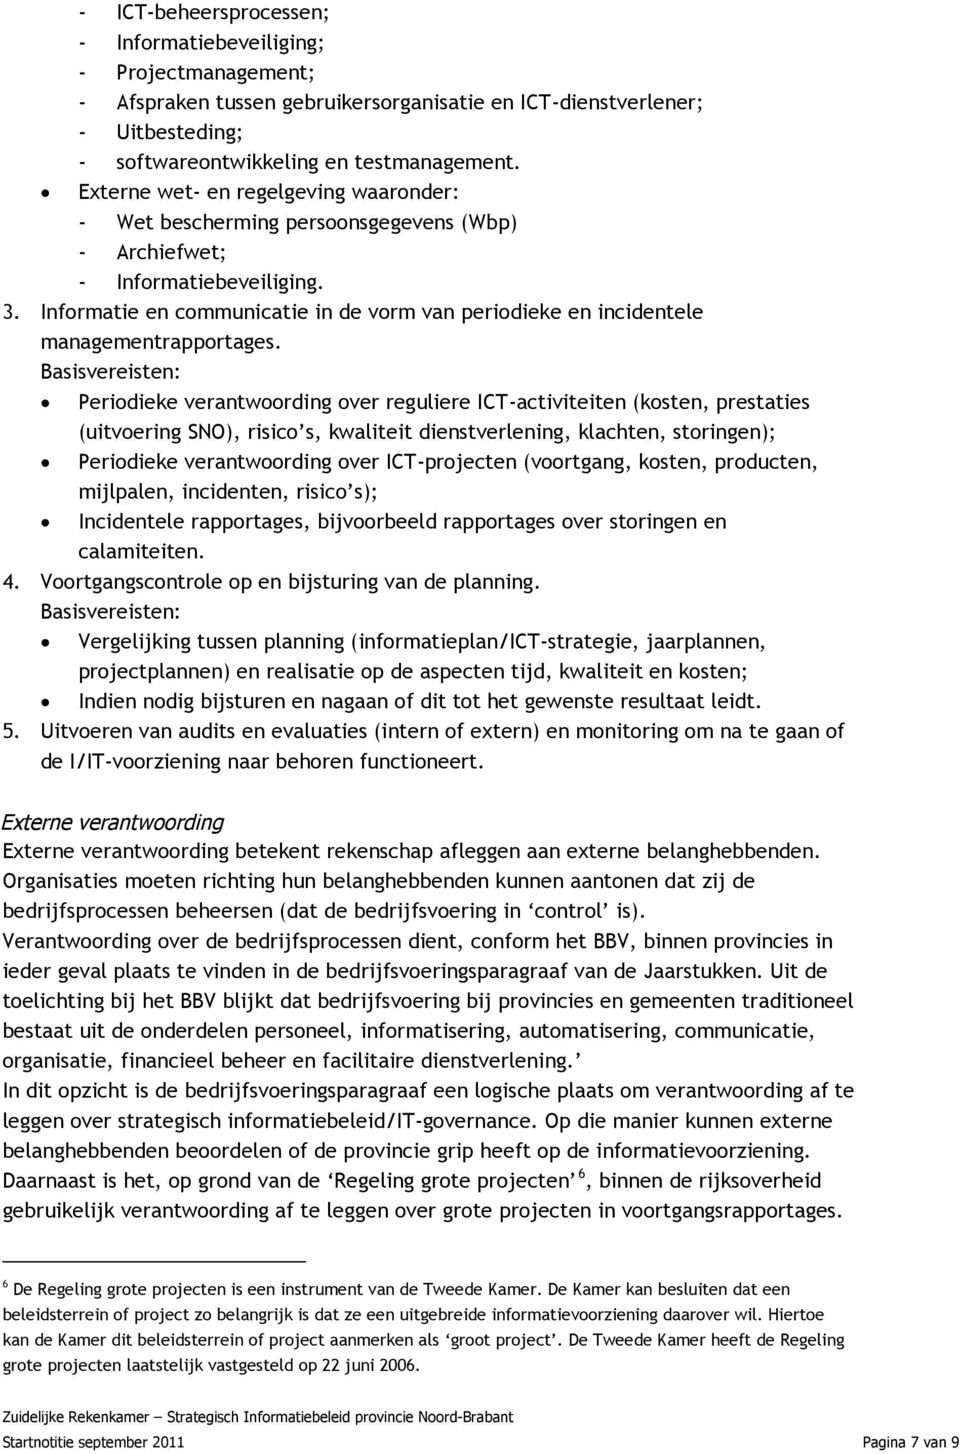 Informatie en communicatie in de vorm van periodieke en incidentele managementrapportages.